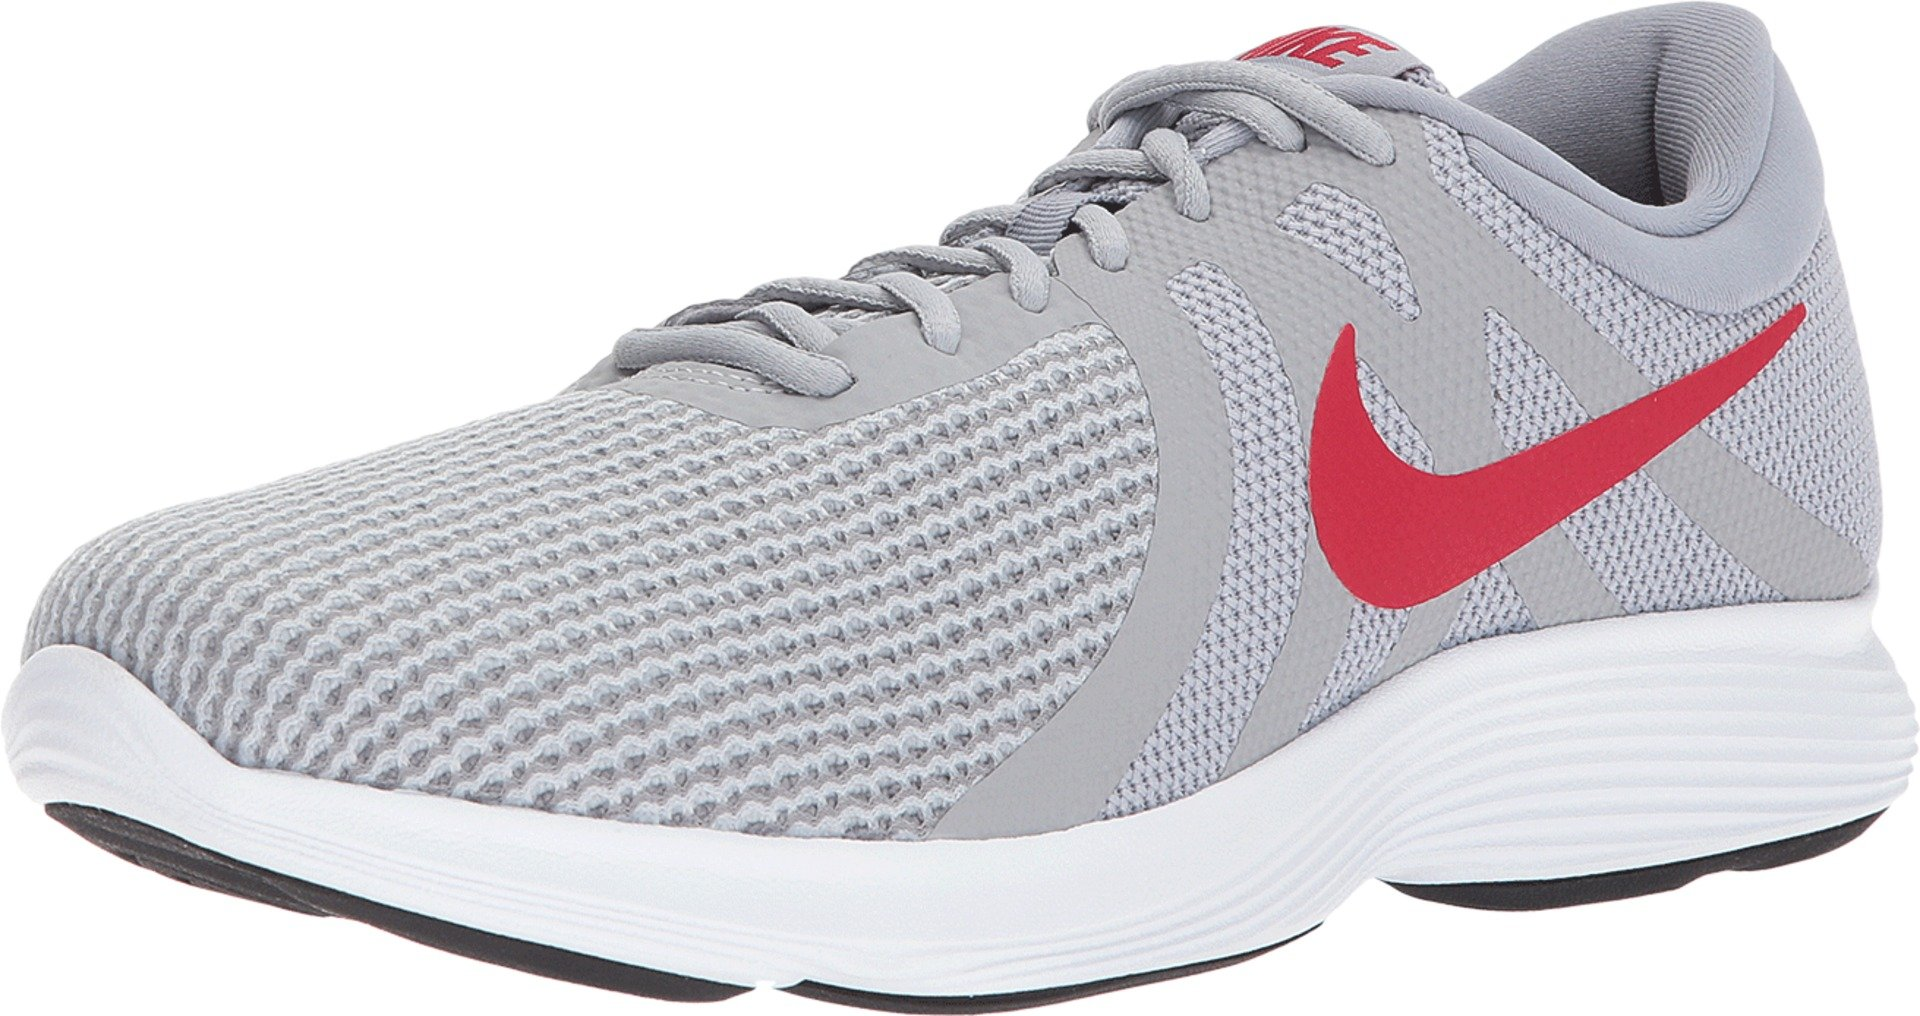 Nike Men's Revolution 4 Running Shoe Wolf Grey/Gym Red/Stealth/White Size 11 M US by Nike